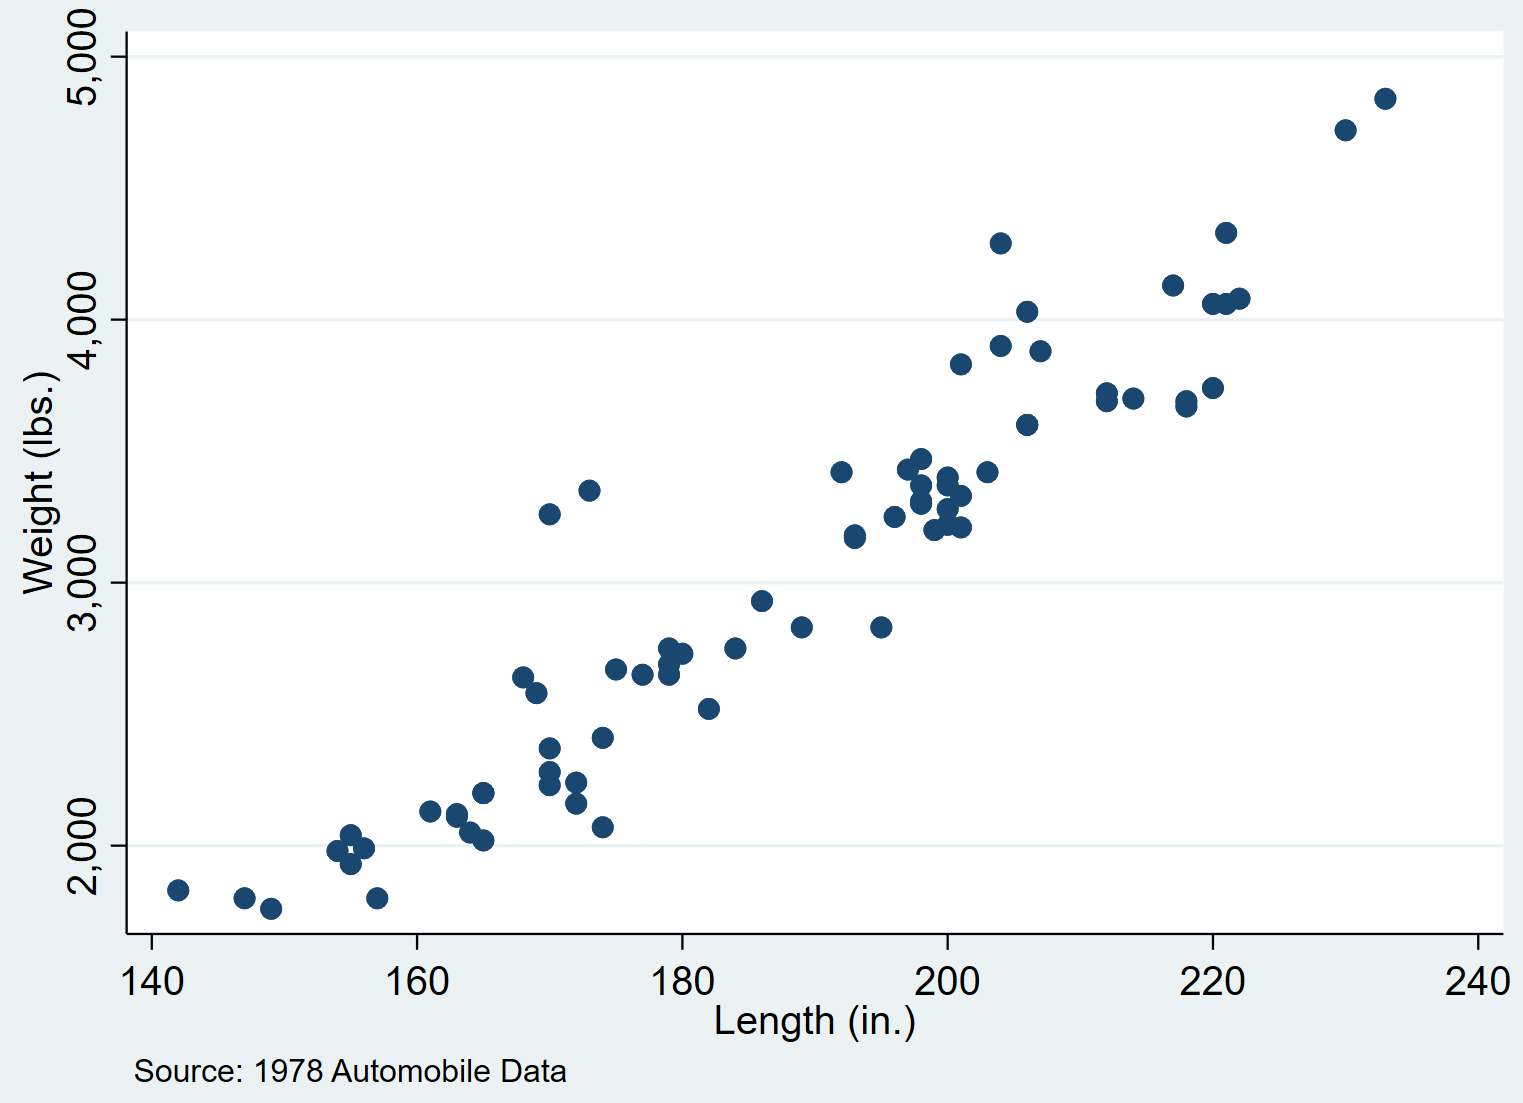 Scatterplot in Stata with a note at the bottom